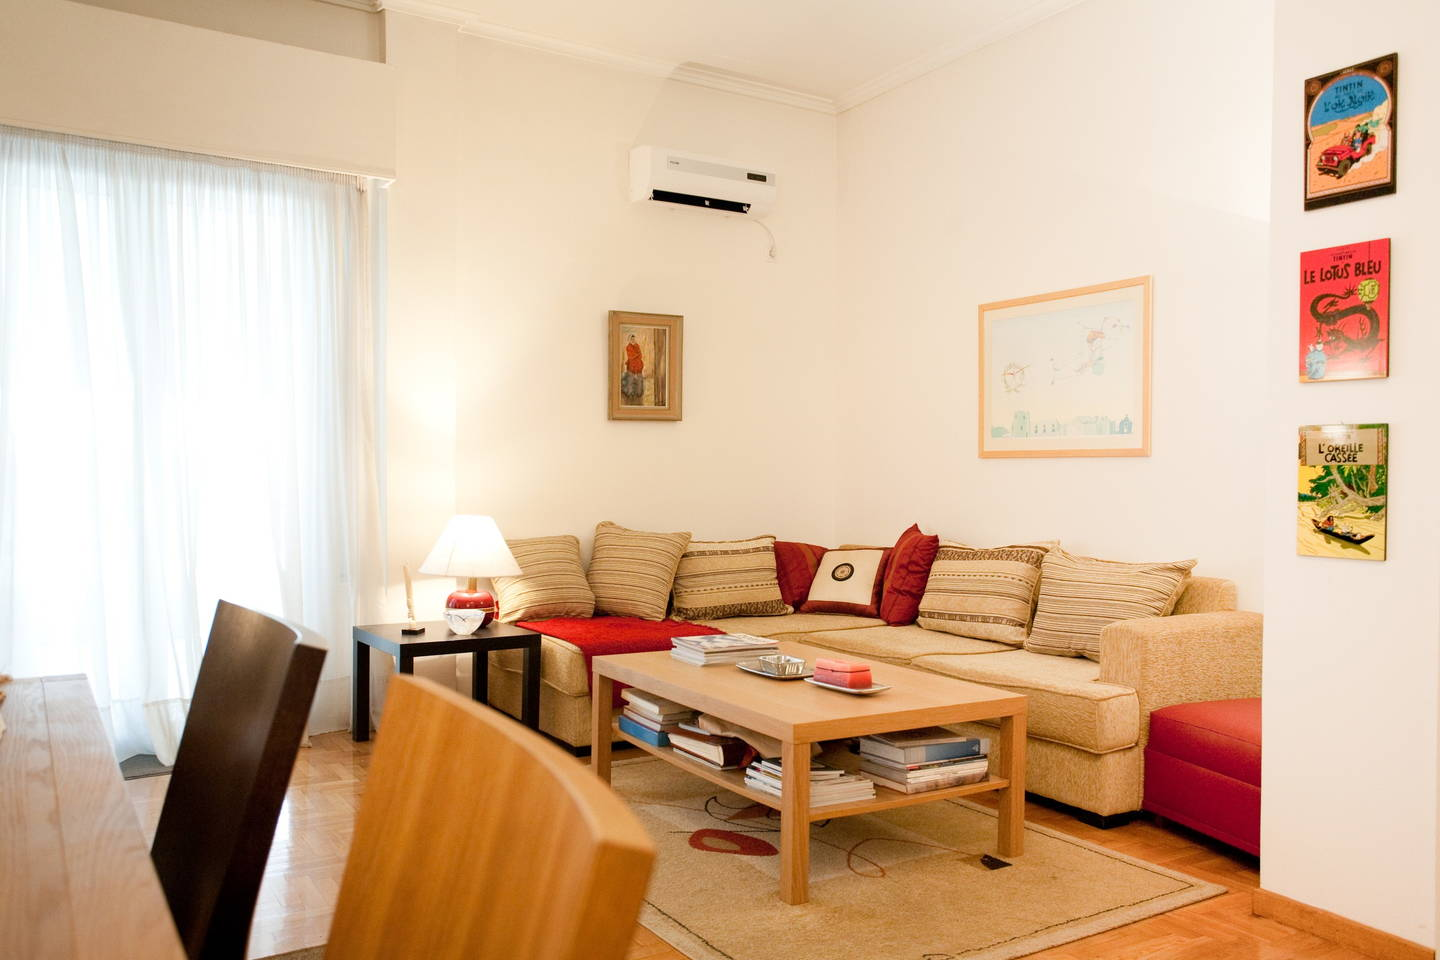 2 Bedrooms Apartment In The Acropolis Area